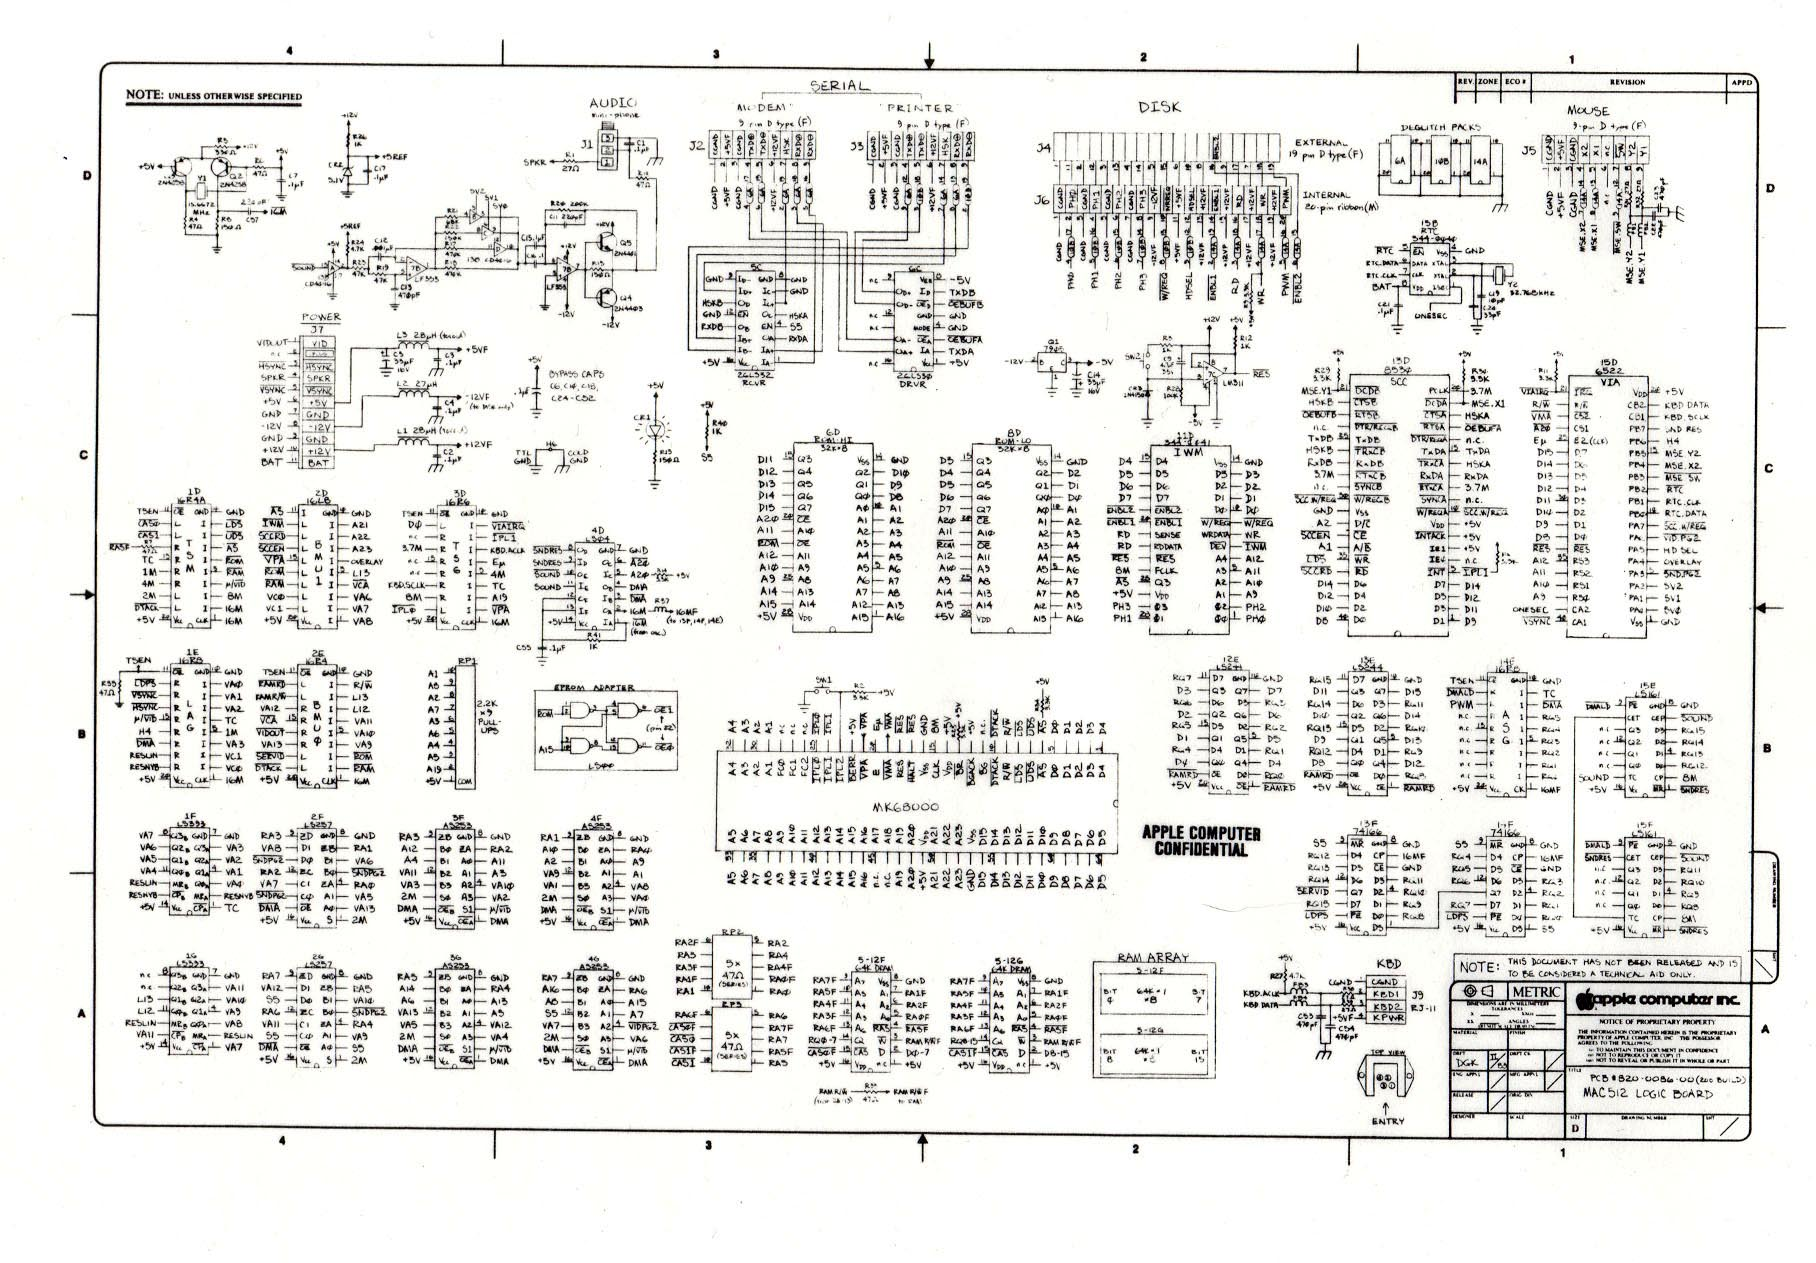 The Original Macintosh Steven M Wiring Diagram For